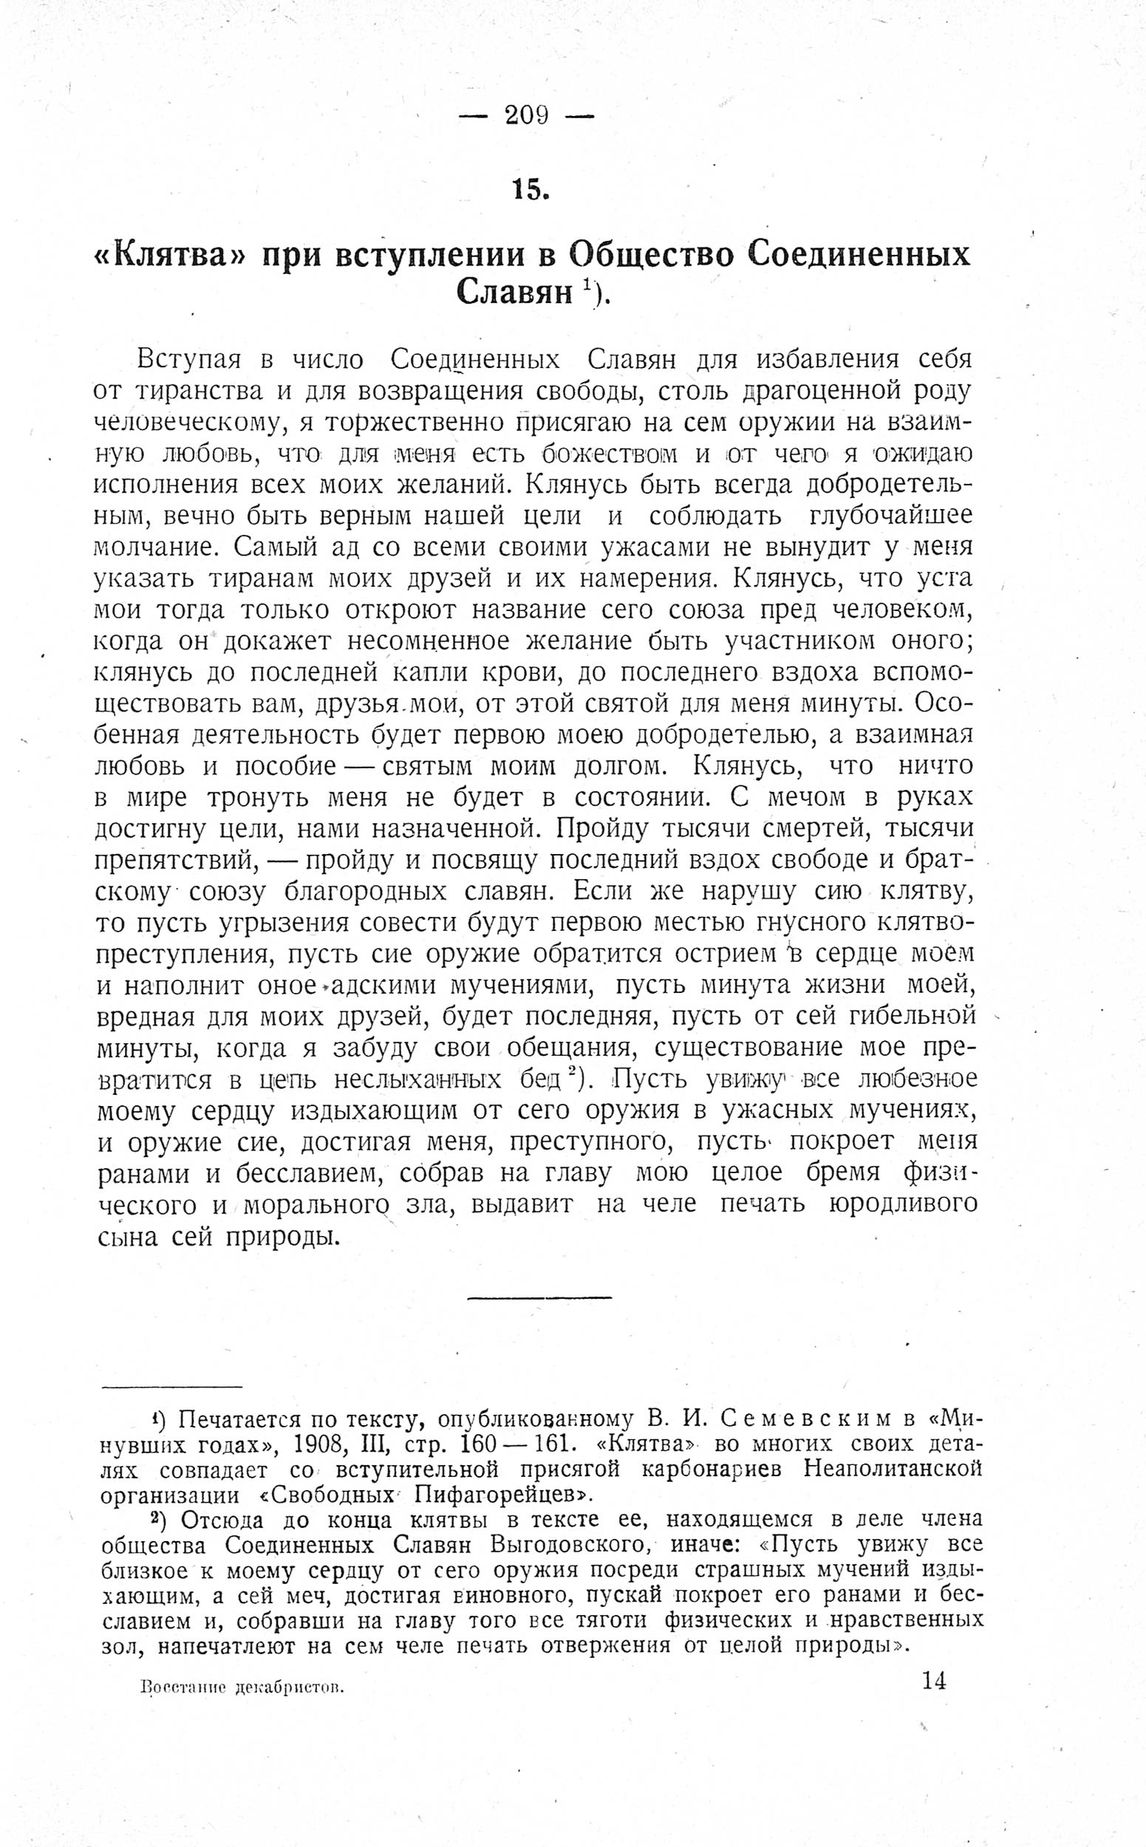 http://elib.shpl.ru/pages/625792/zooms/7